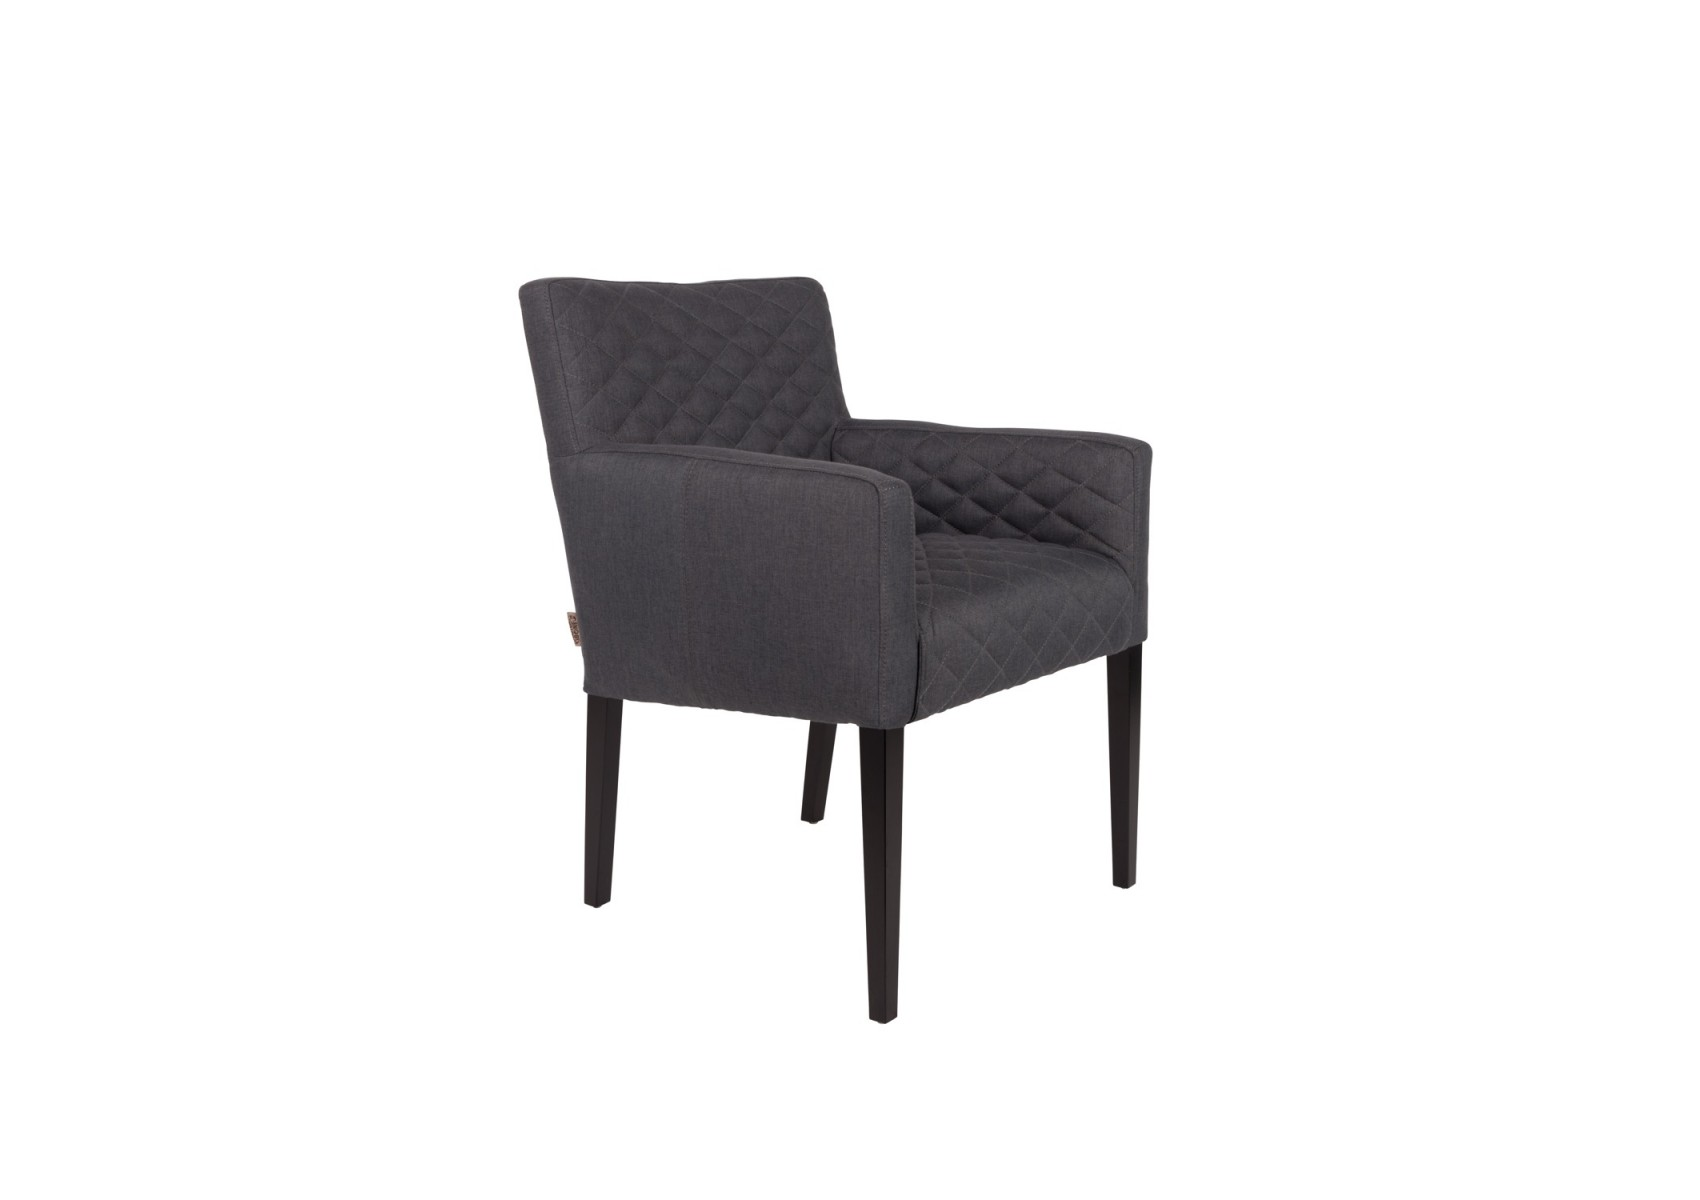 fauteuil de salon avec accoudoirs design aaron dutch bone. Black Bedroom Furniture Sets. Home Design Ideas